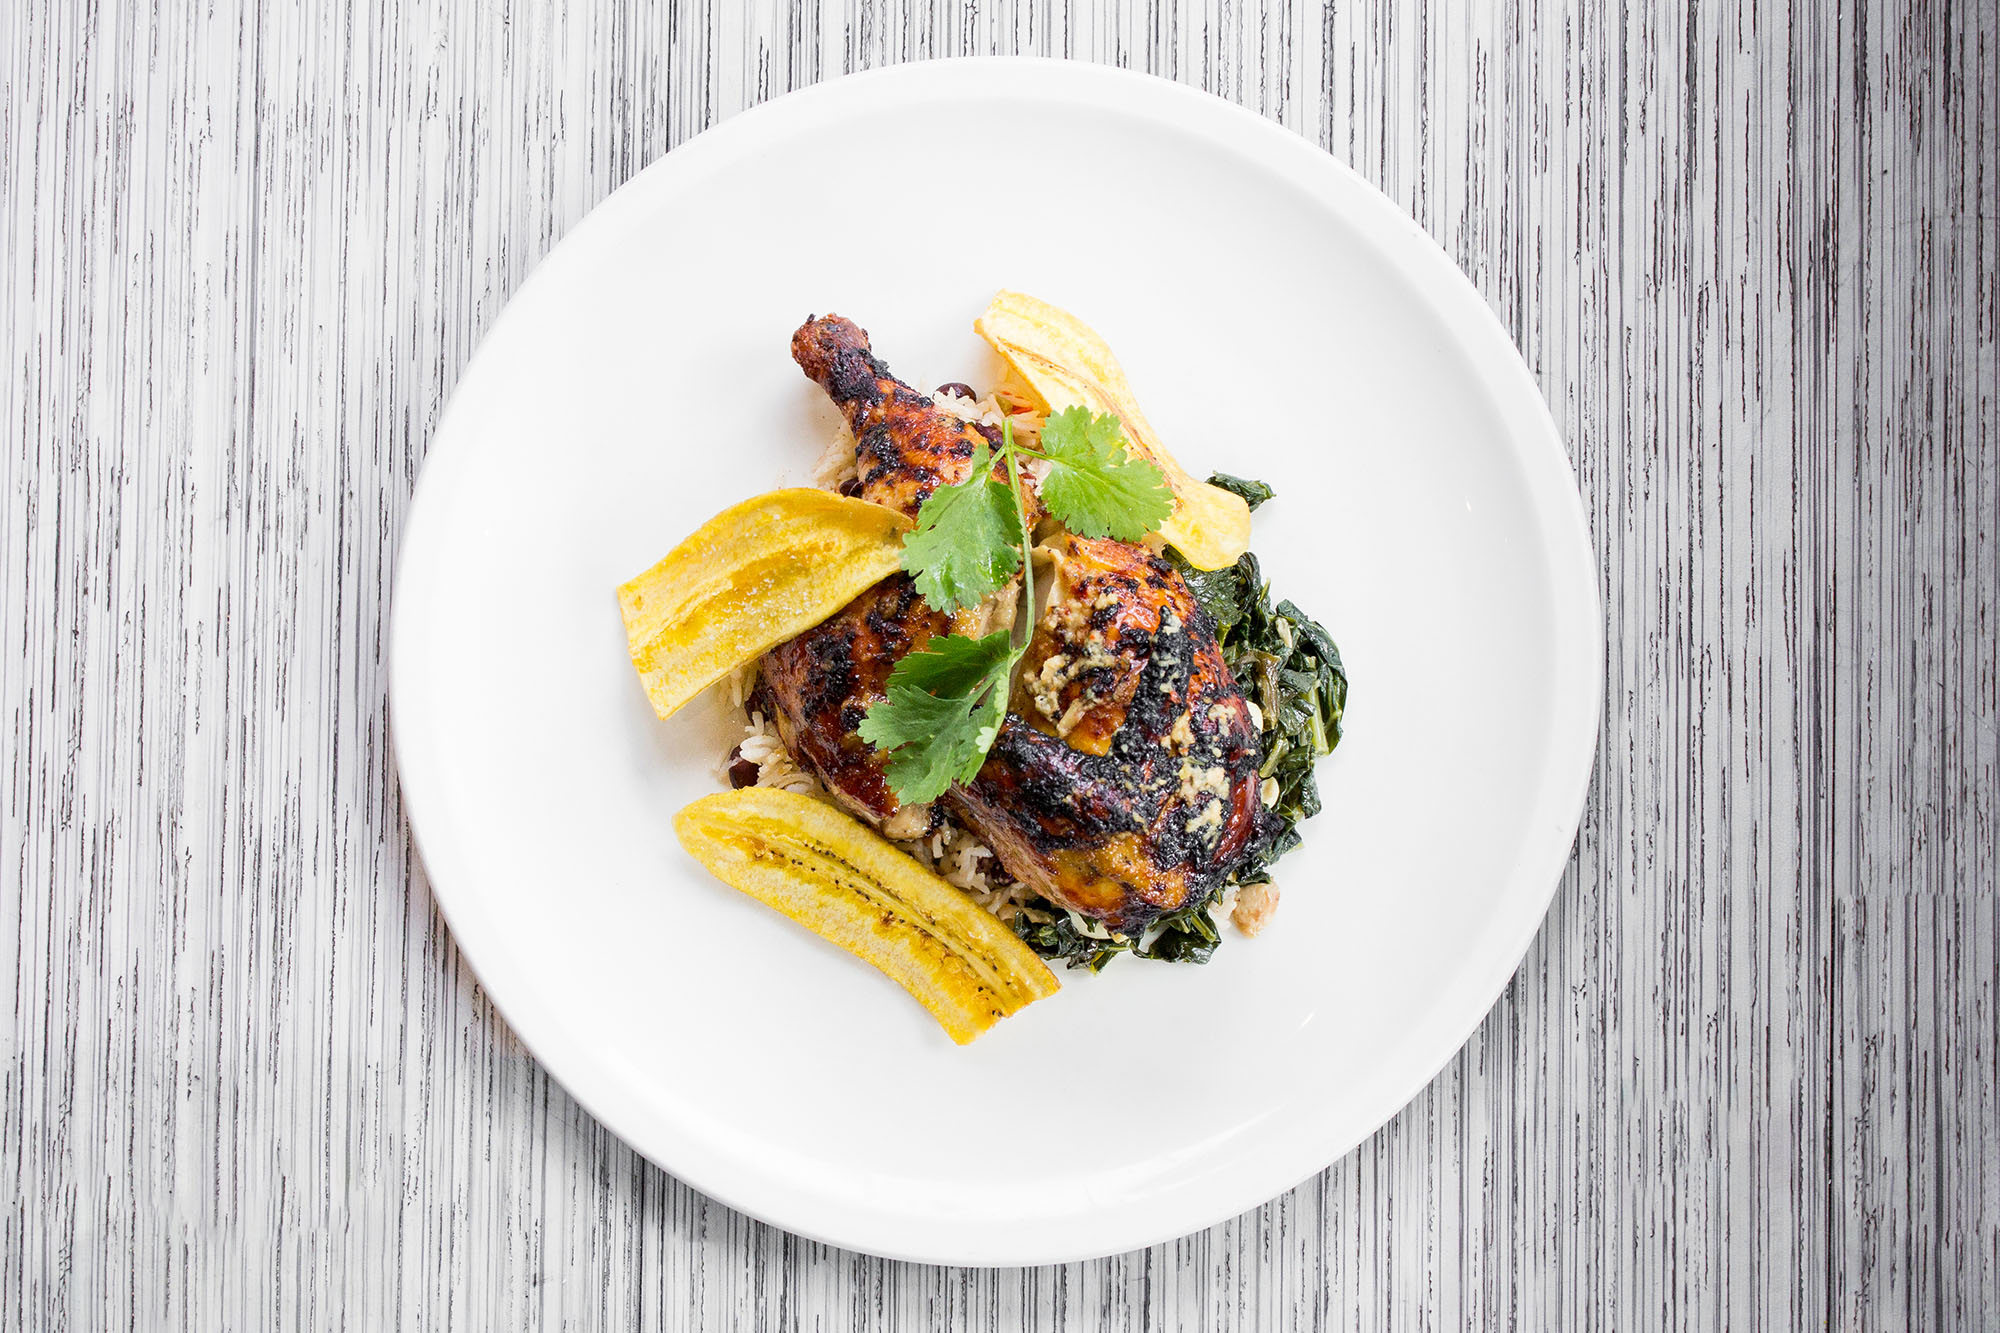 Winterlicious jerk chicken at Canteen on white plate